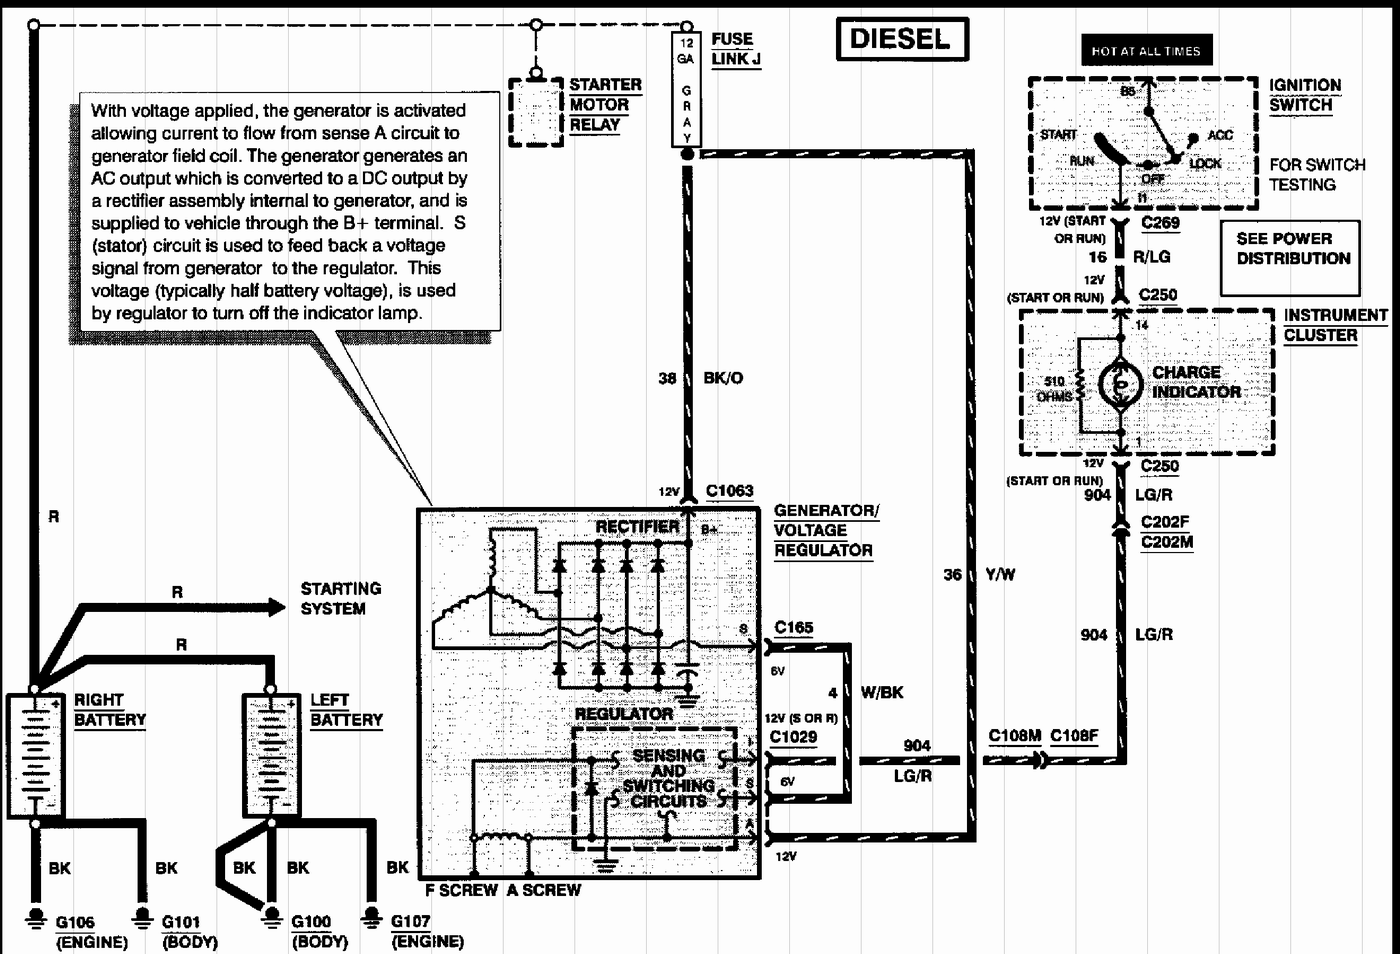 [DIAGRAM] 1981 Ford F350 Fuel System Diagram FULL Version